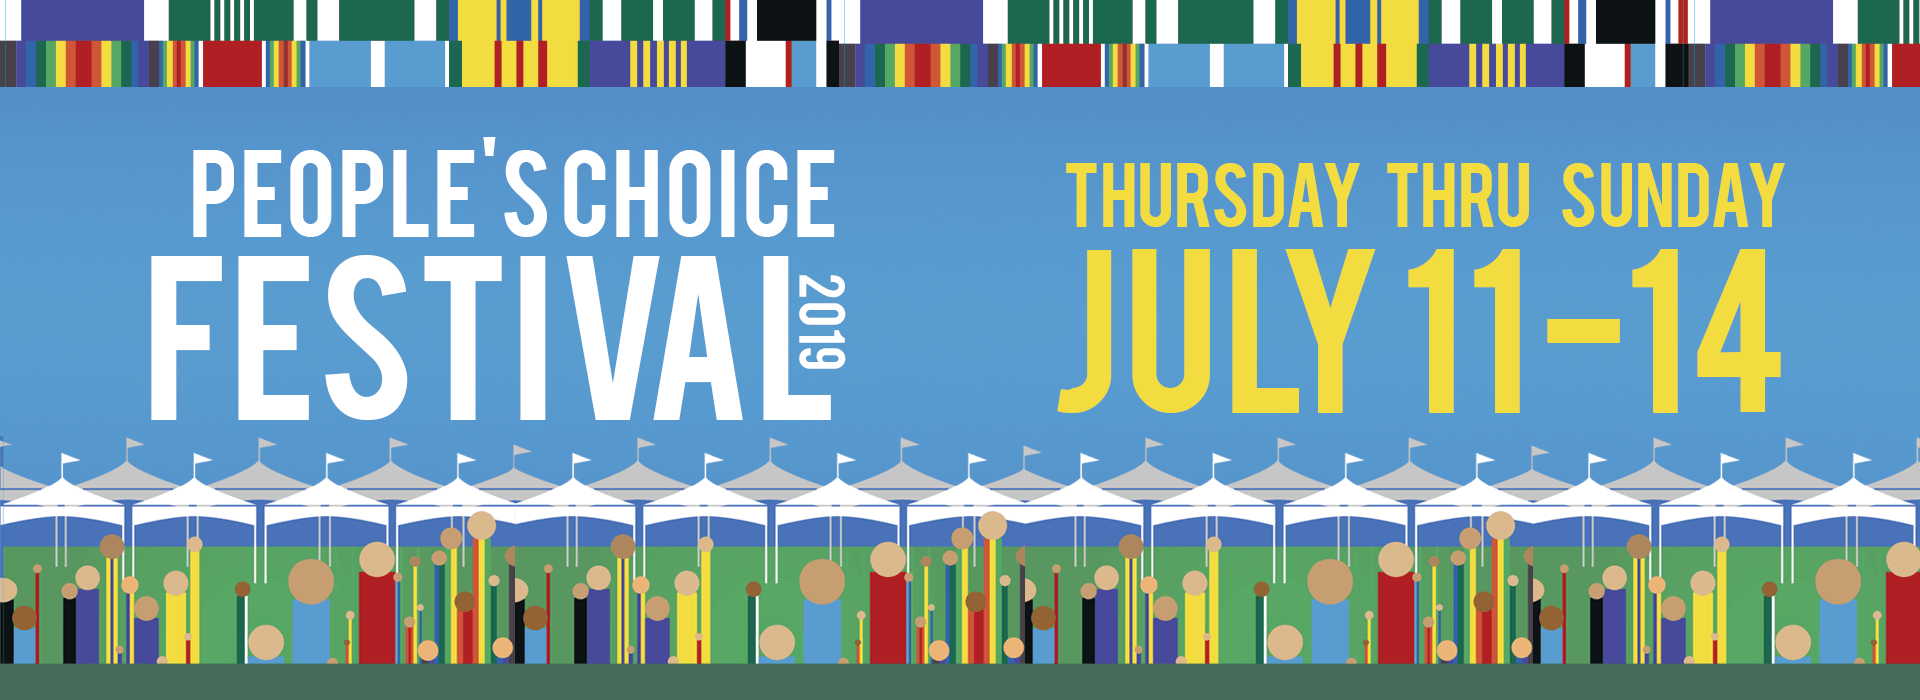 People's Choice Festival